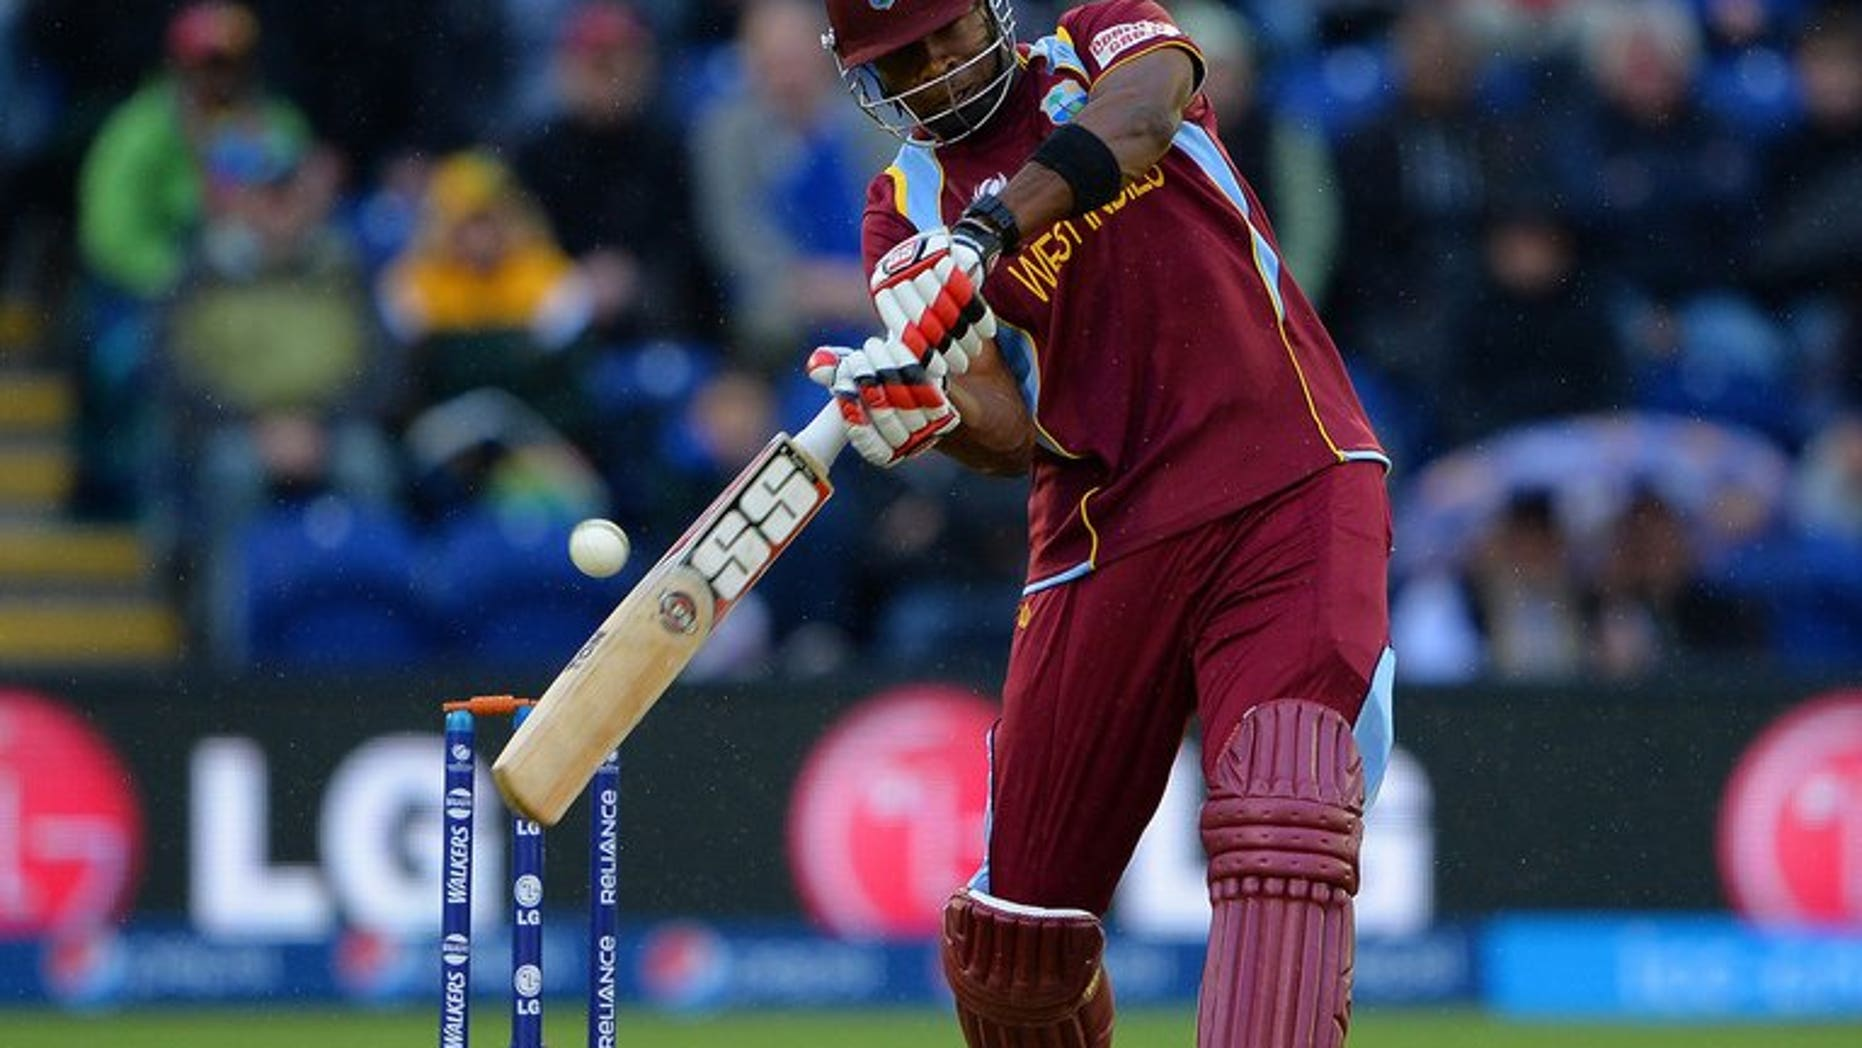 West Indies' Kieron Pollard bats on June 14, 2013. Late hitting by him and captain Darren Sammy lifted the West Indies to a competitive 152 for seven against Pakistan in the first Twenty20 international at the Arnos Vale Stadium.